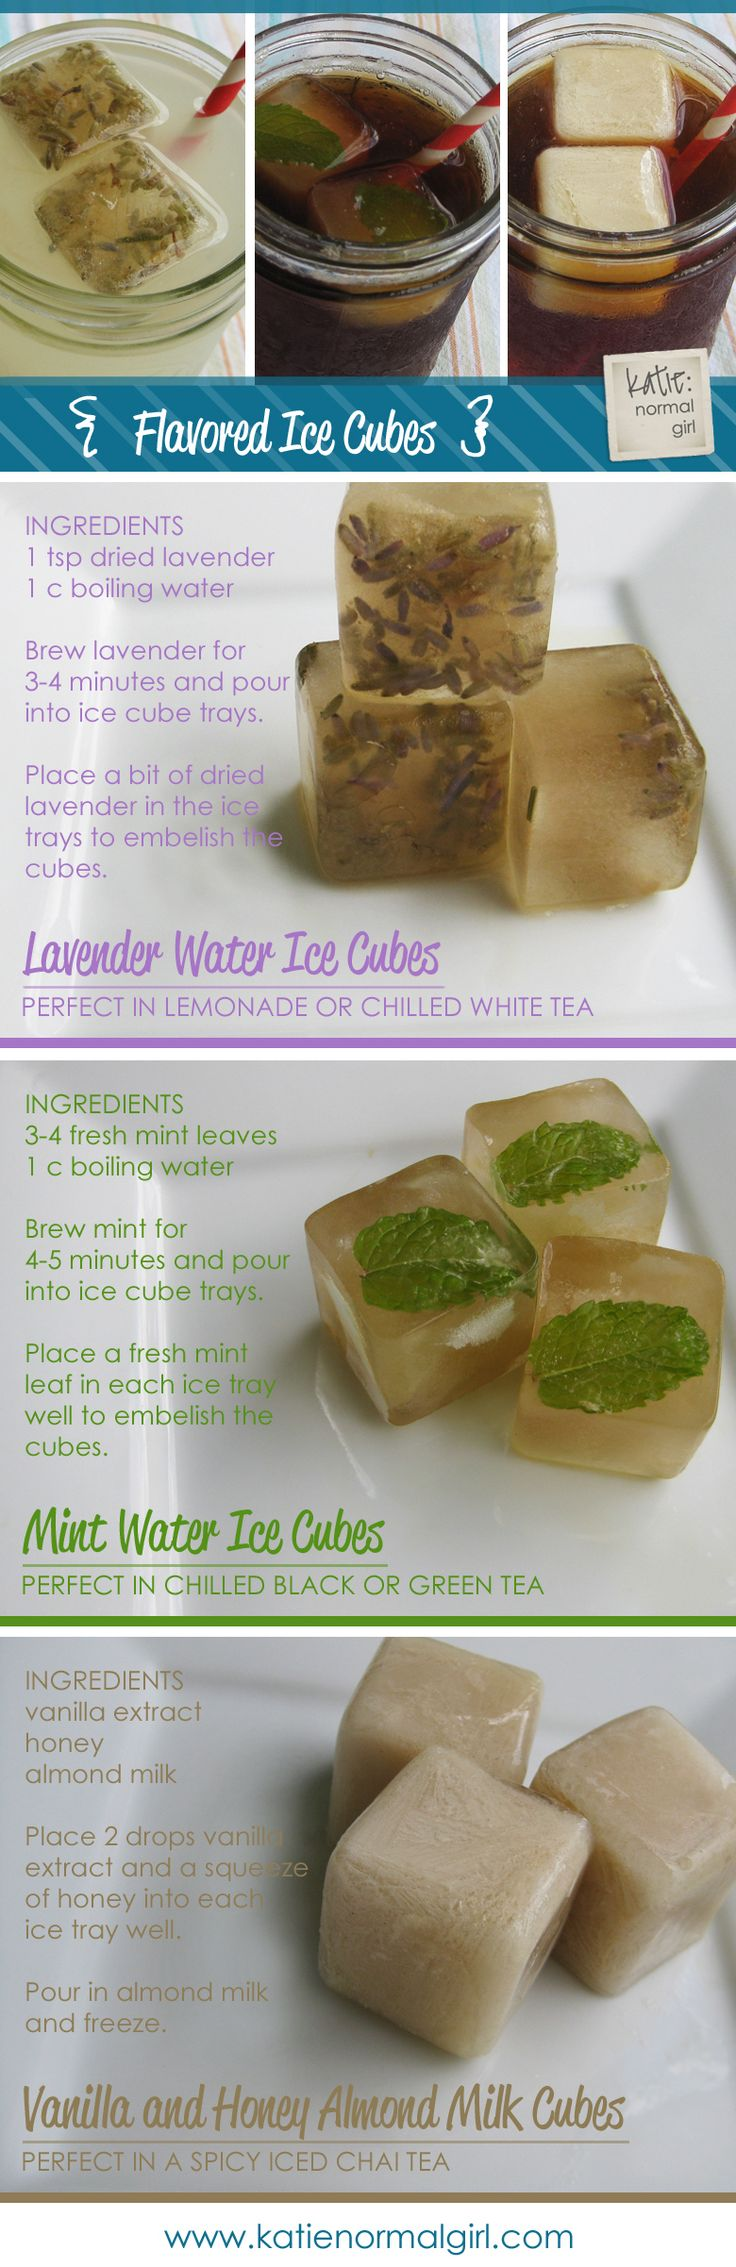 Flavored Ice Cubes - esp vanilla one for chai